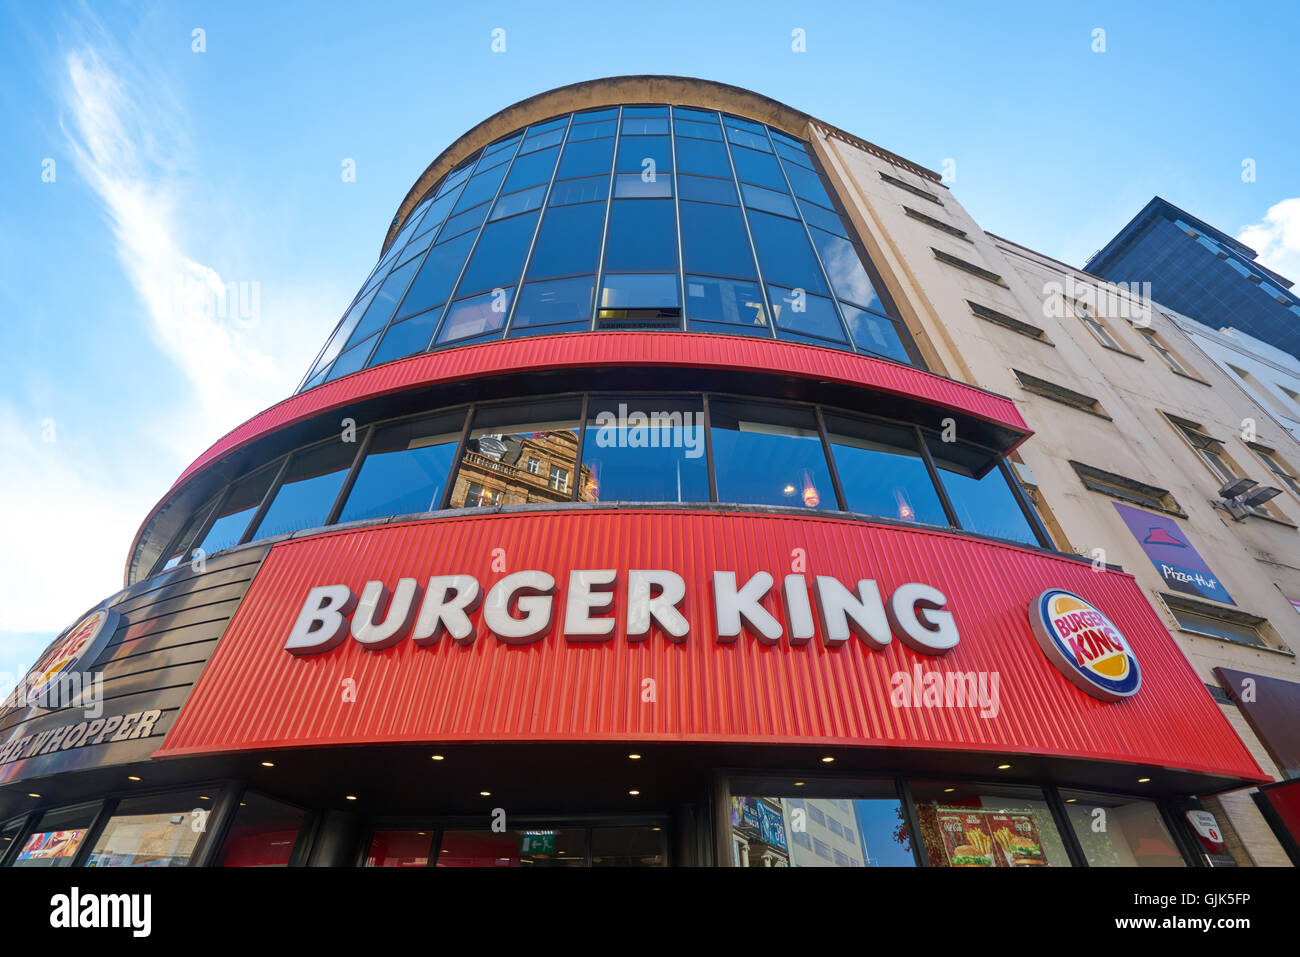 burger King, Leicester Square - Stock Image